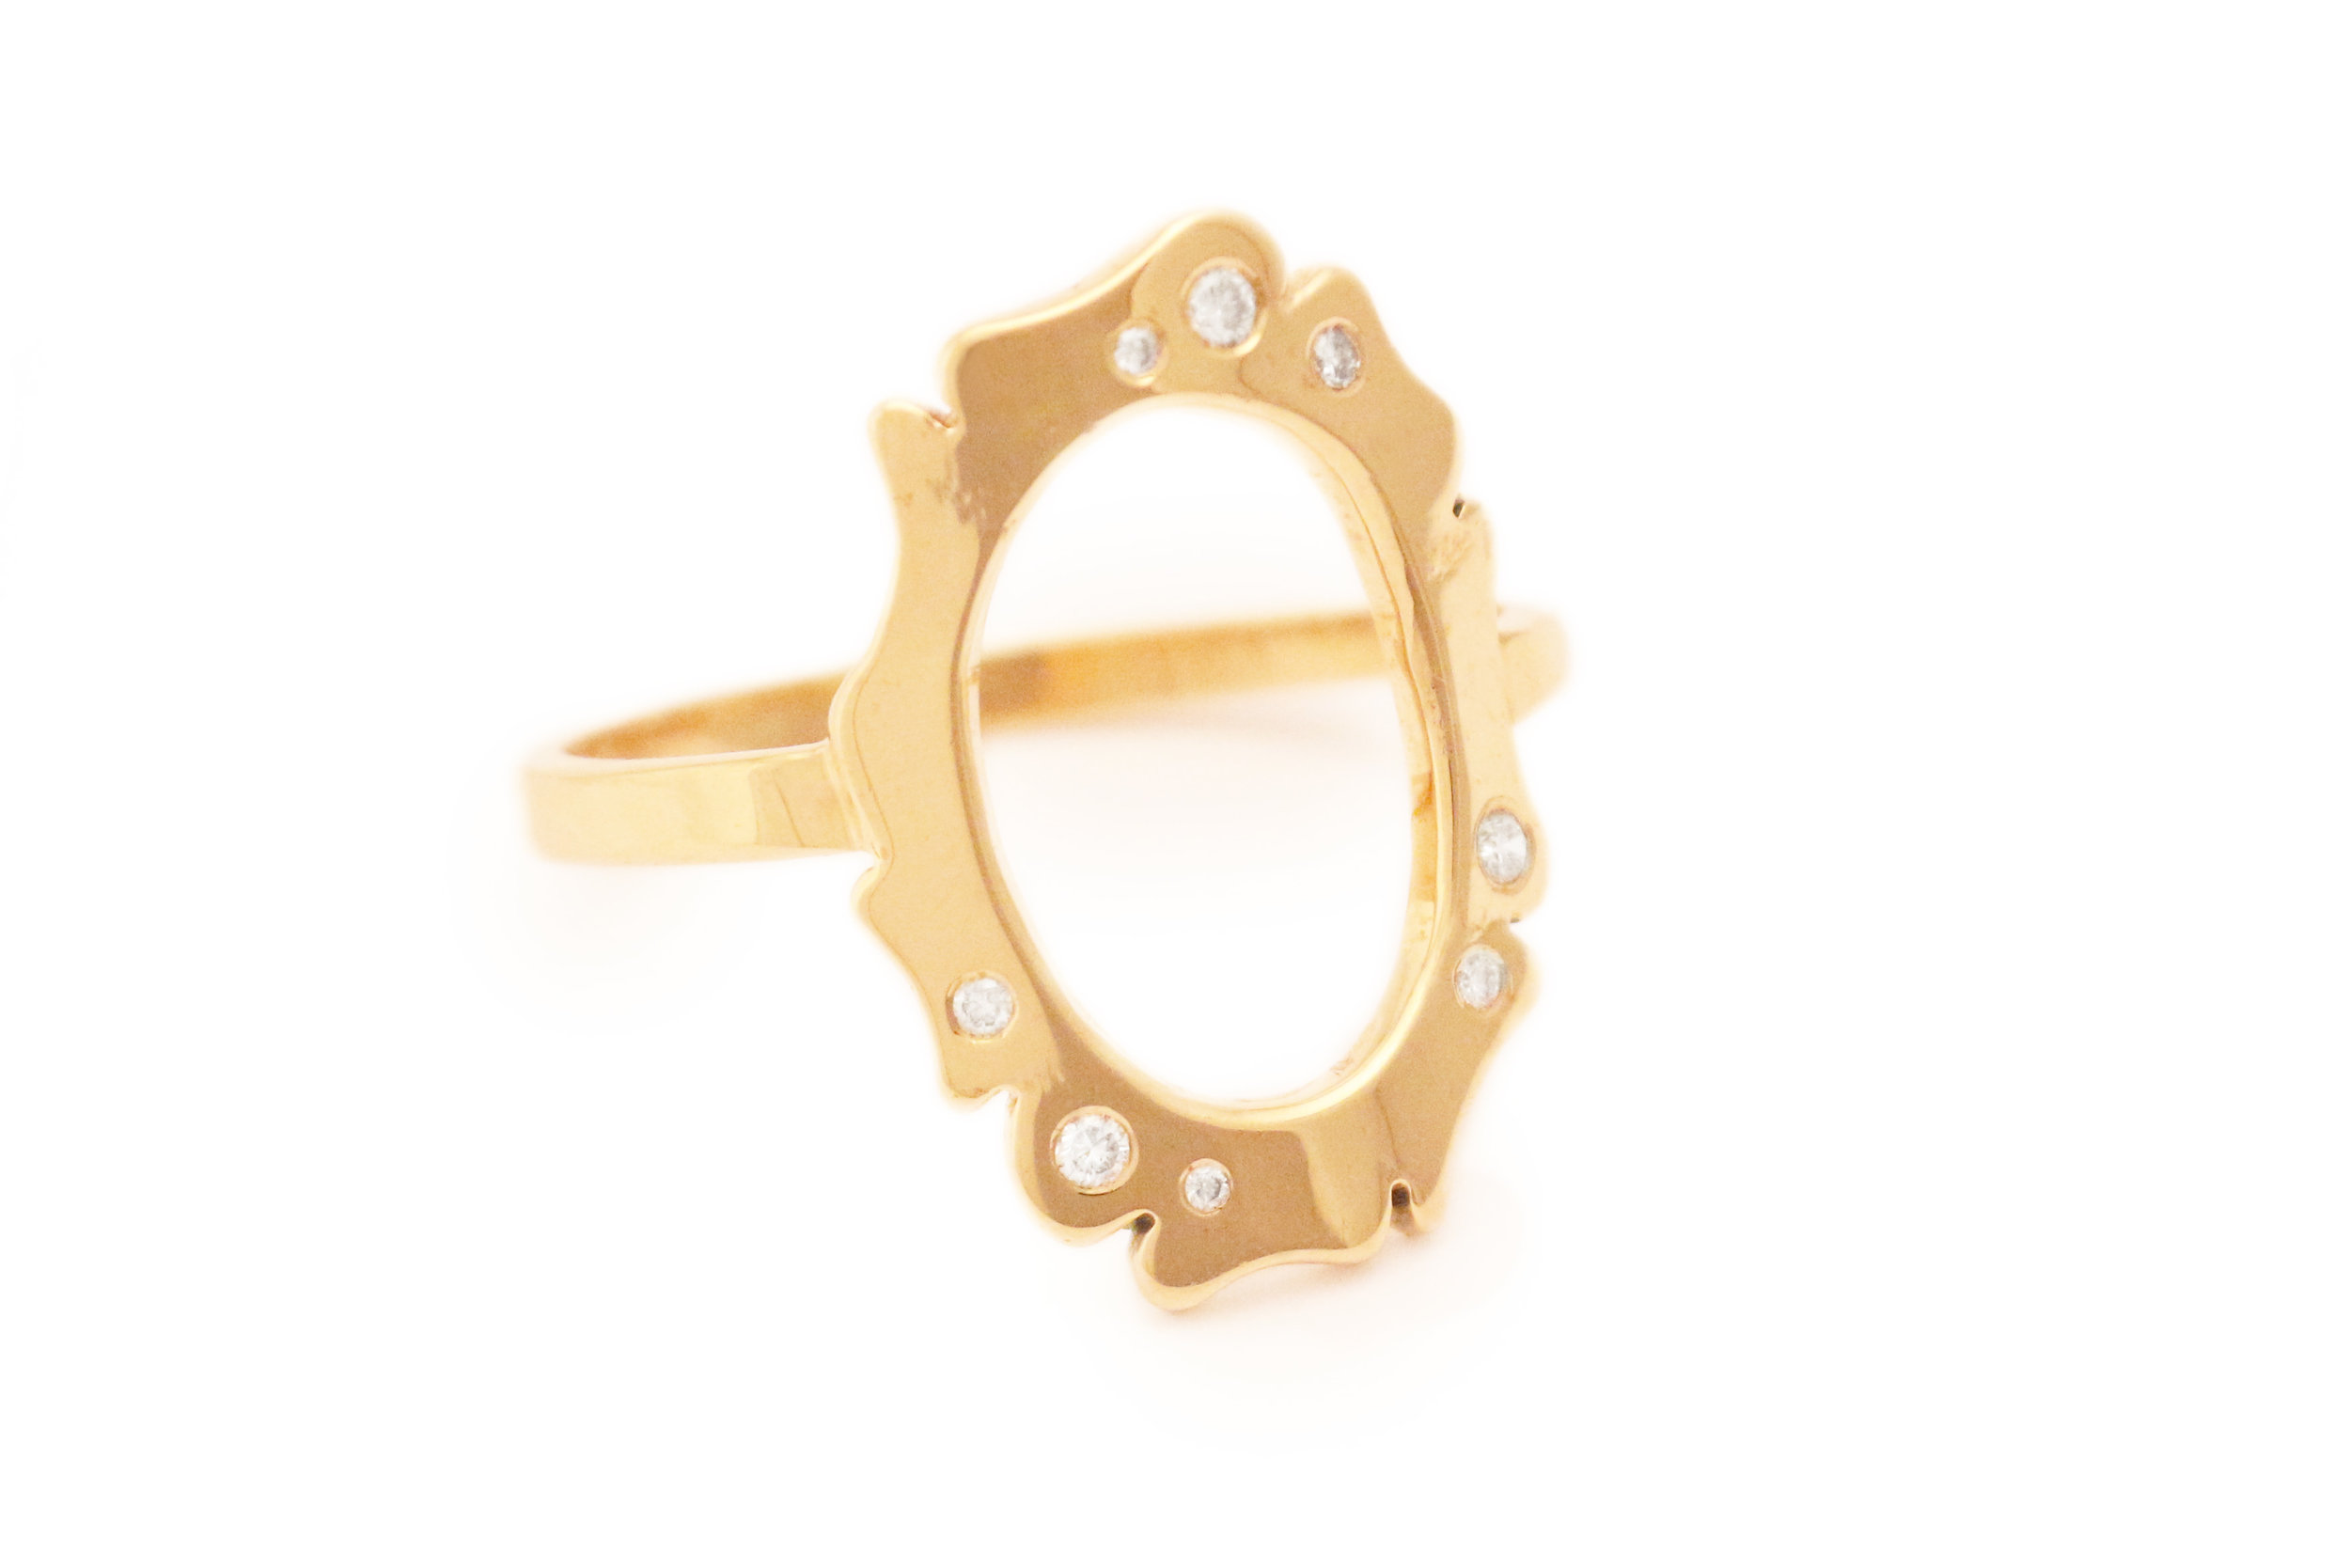 D Flora Open Ring  Click here to shop